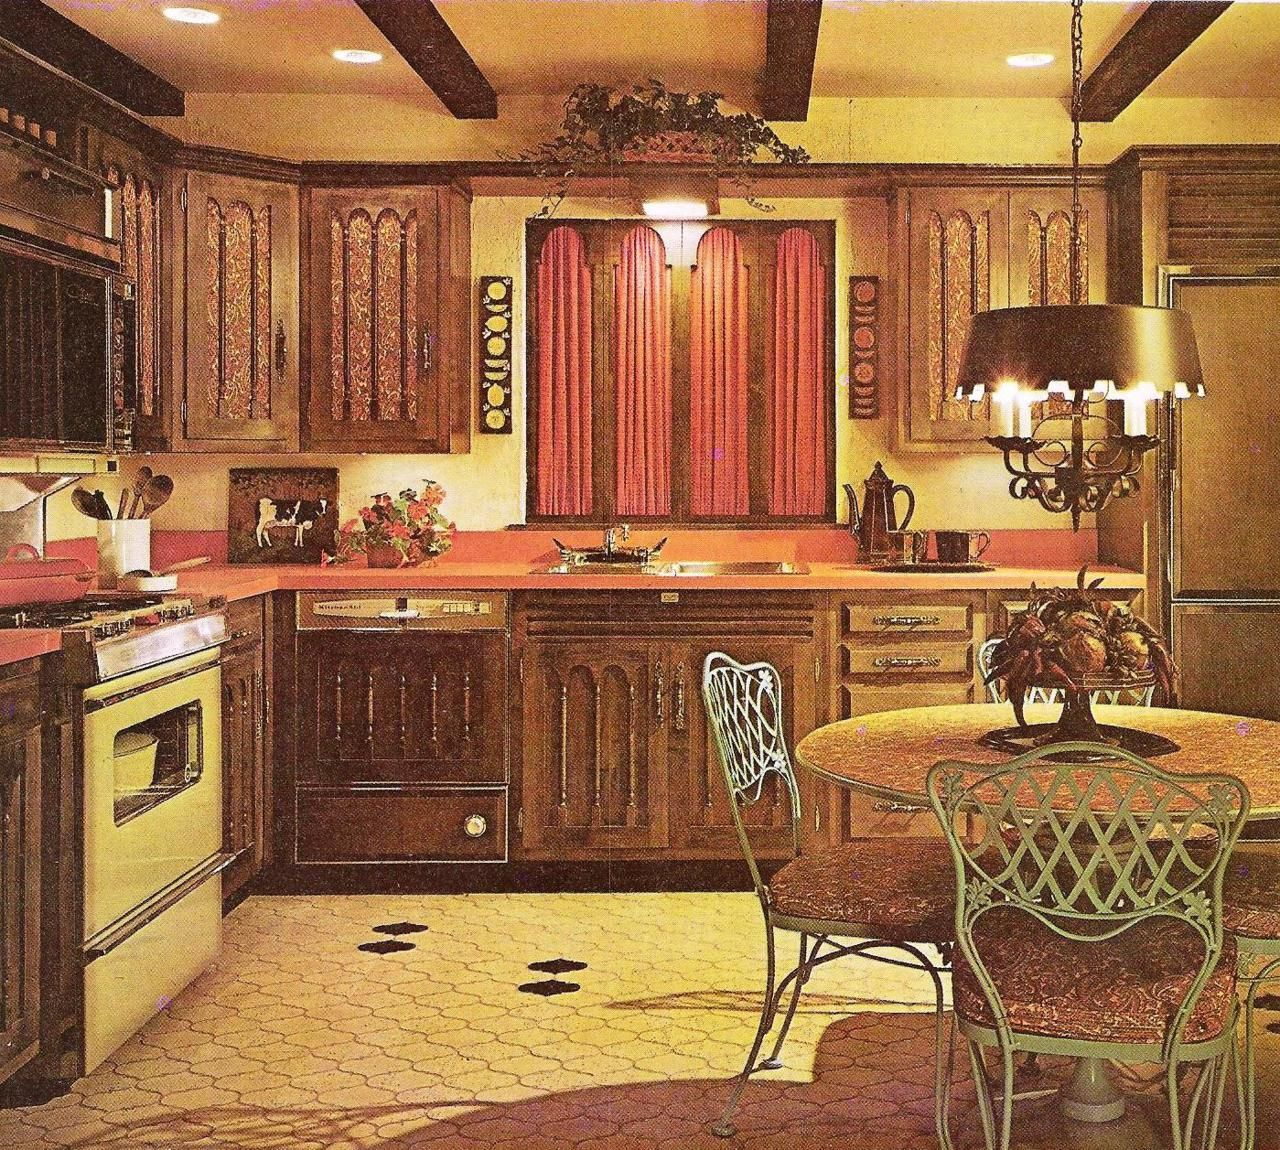 The 70 000 Dream Kitchen Makeover: Mediterranean Style Kitchen, 1972